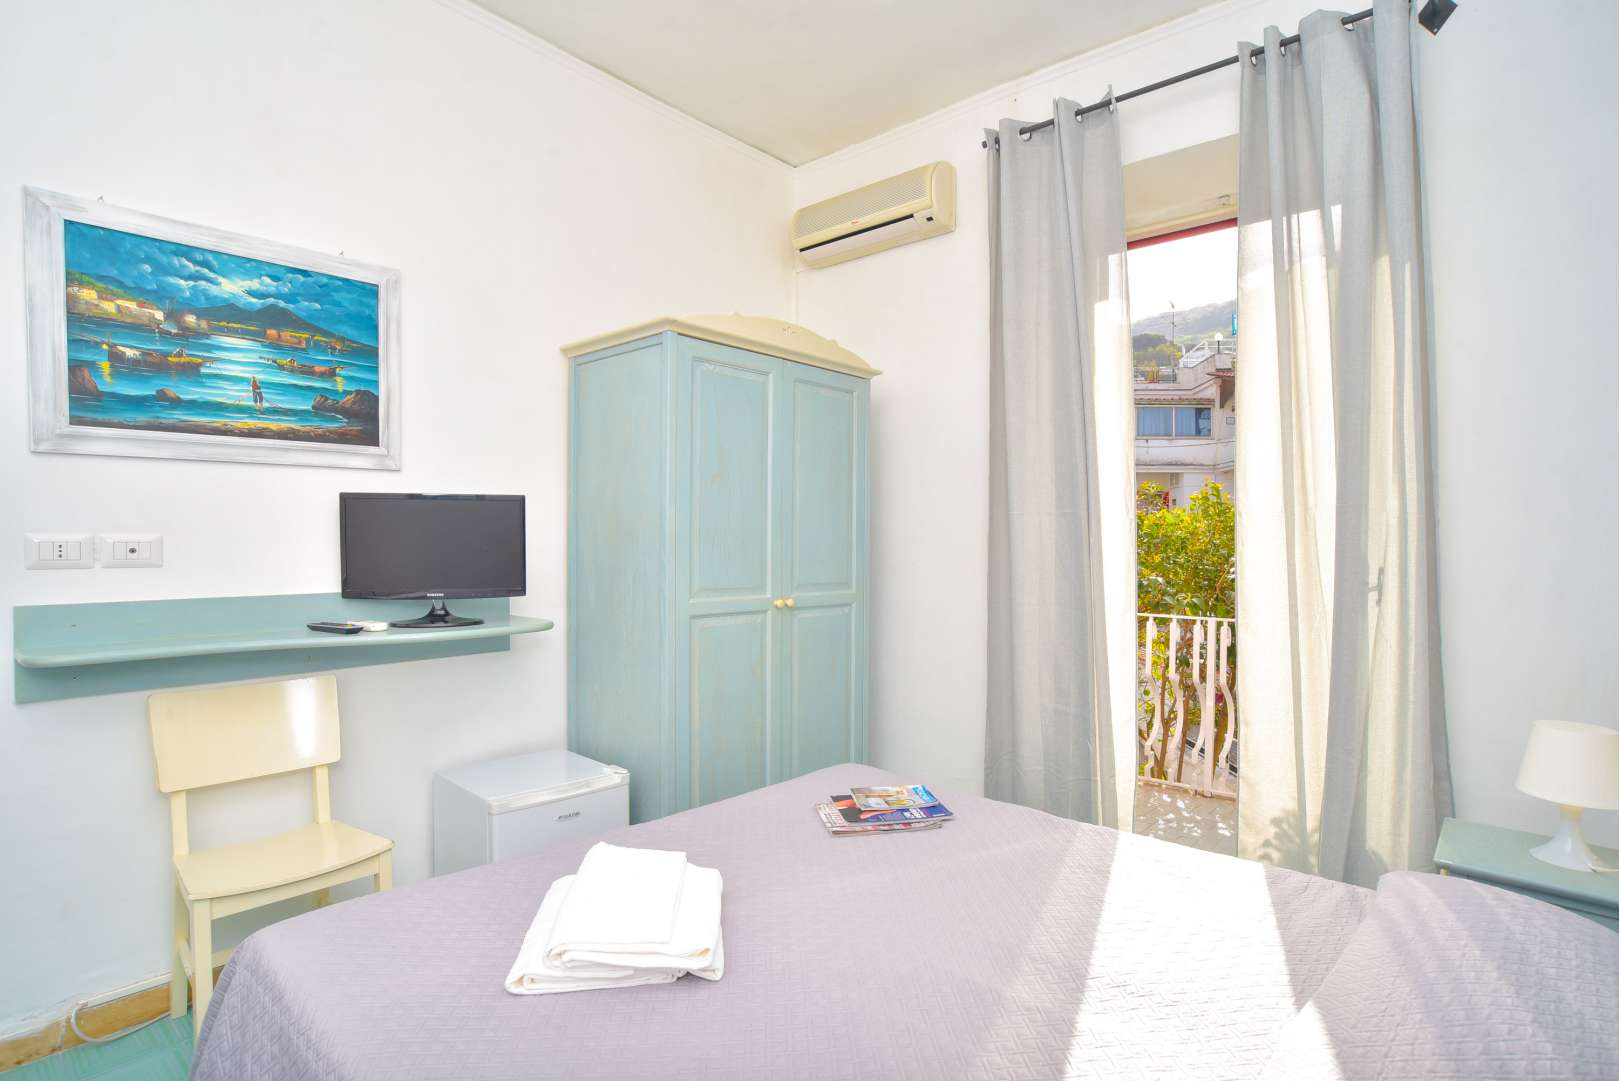 Camere Rinnovate